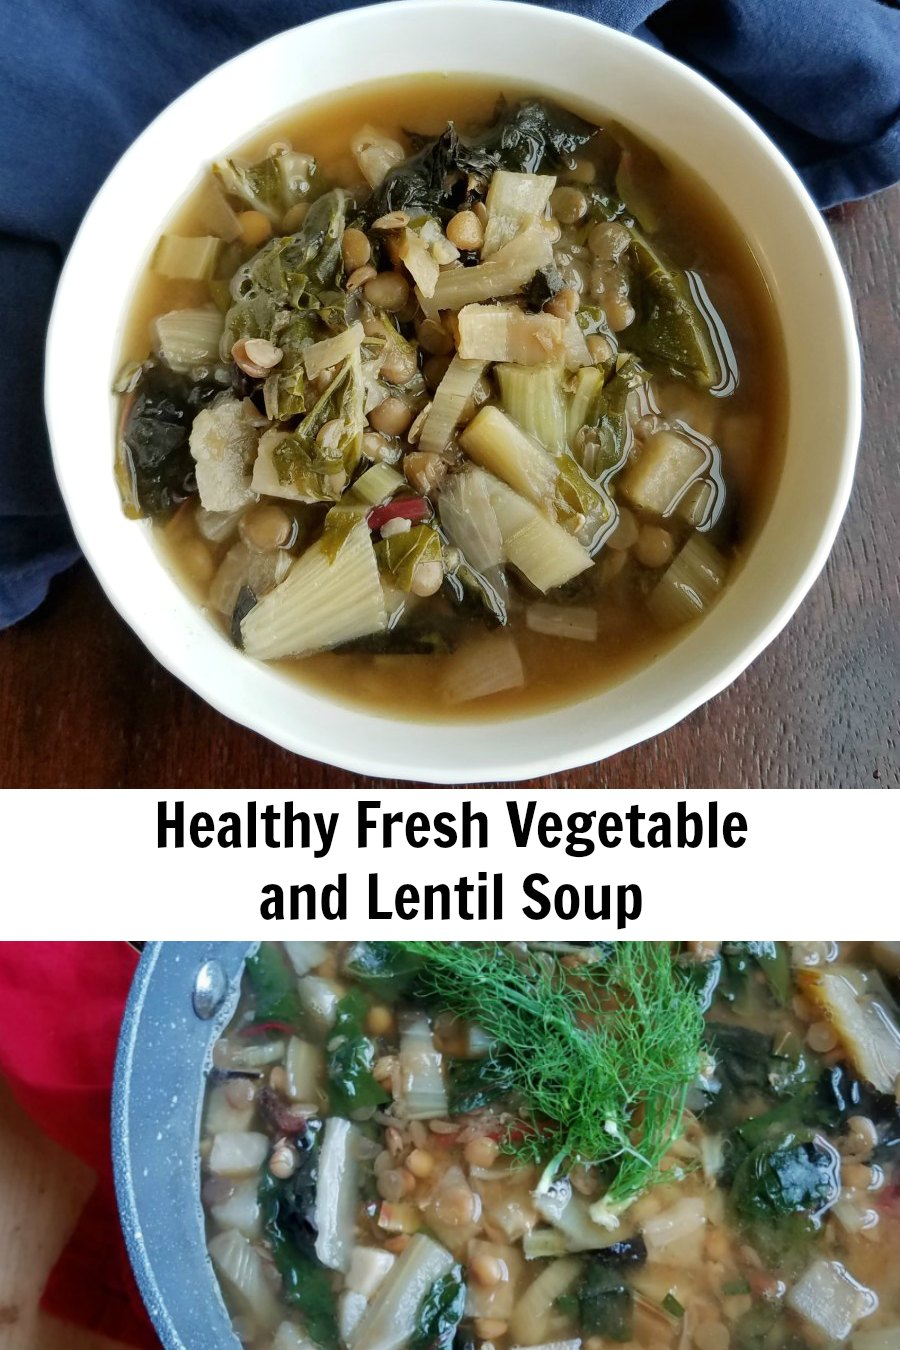 Fresh garden vegetables meet lentils for a hearty and delicious vegetarian soup. This easy, healthy and delicious soup makes for a perfect lunch or dinner year round!